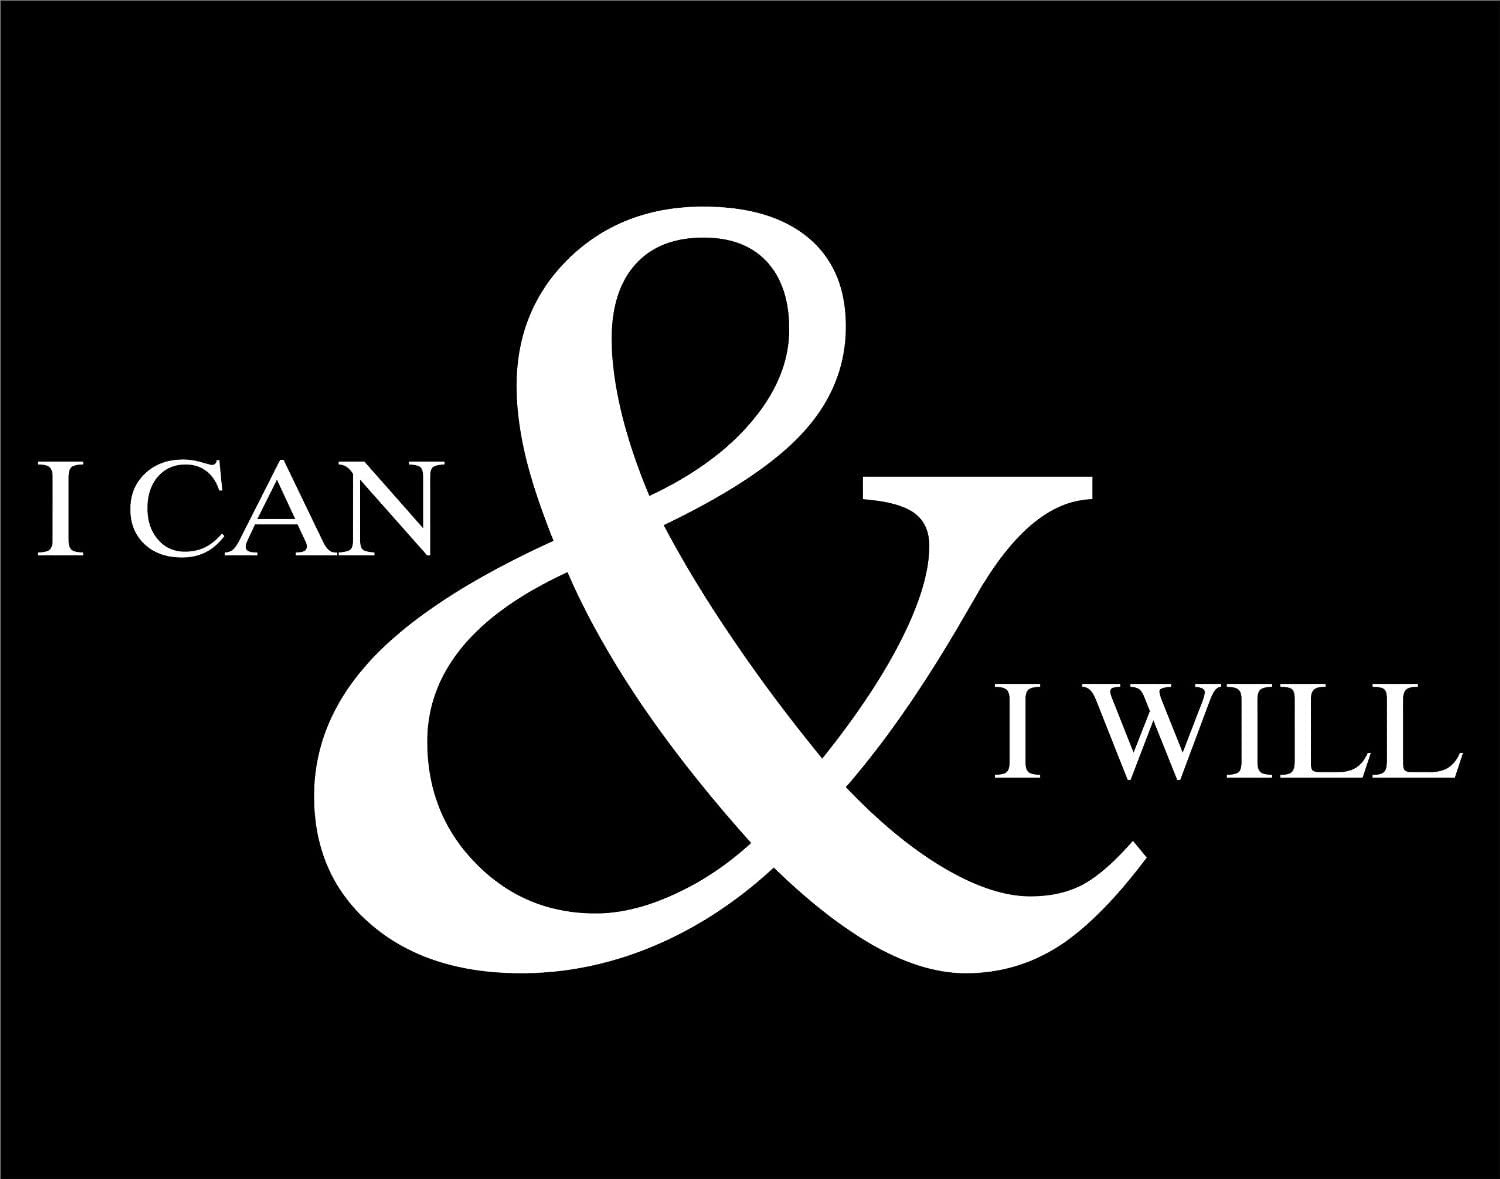 Wall 7 X 4 in Decal Car School Locker Room Truck KEEN I CAN and I Will Decal Motivational White Laptop